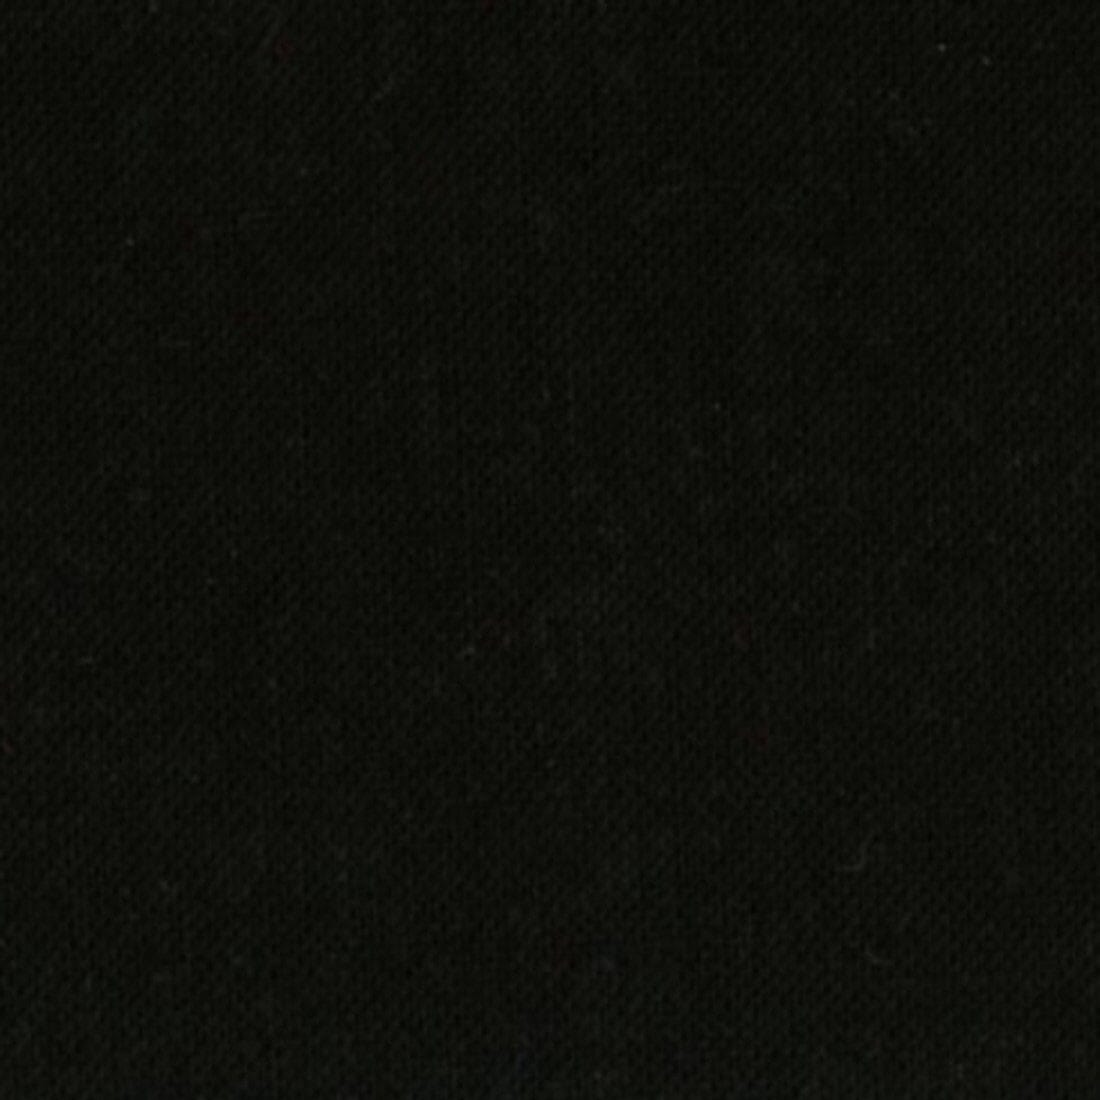 Quilt Backing Fabric 108 Inch Wide Cotton Solid Black